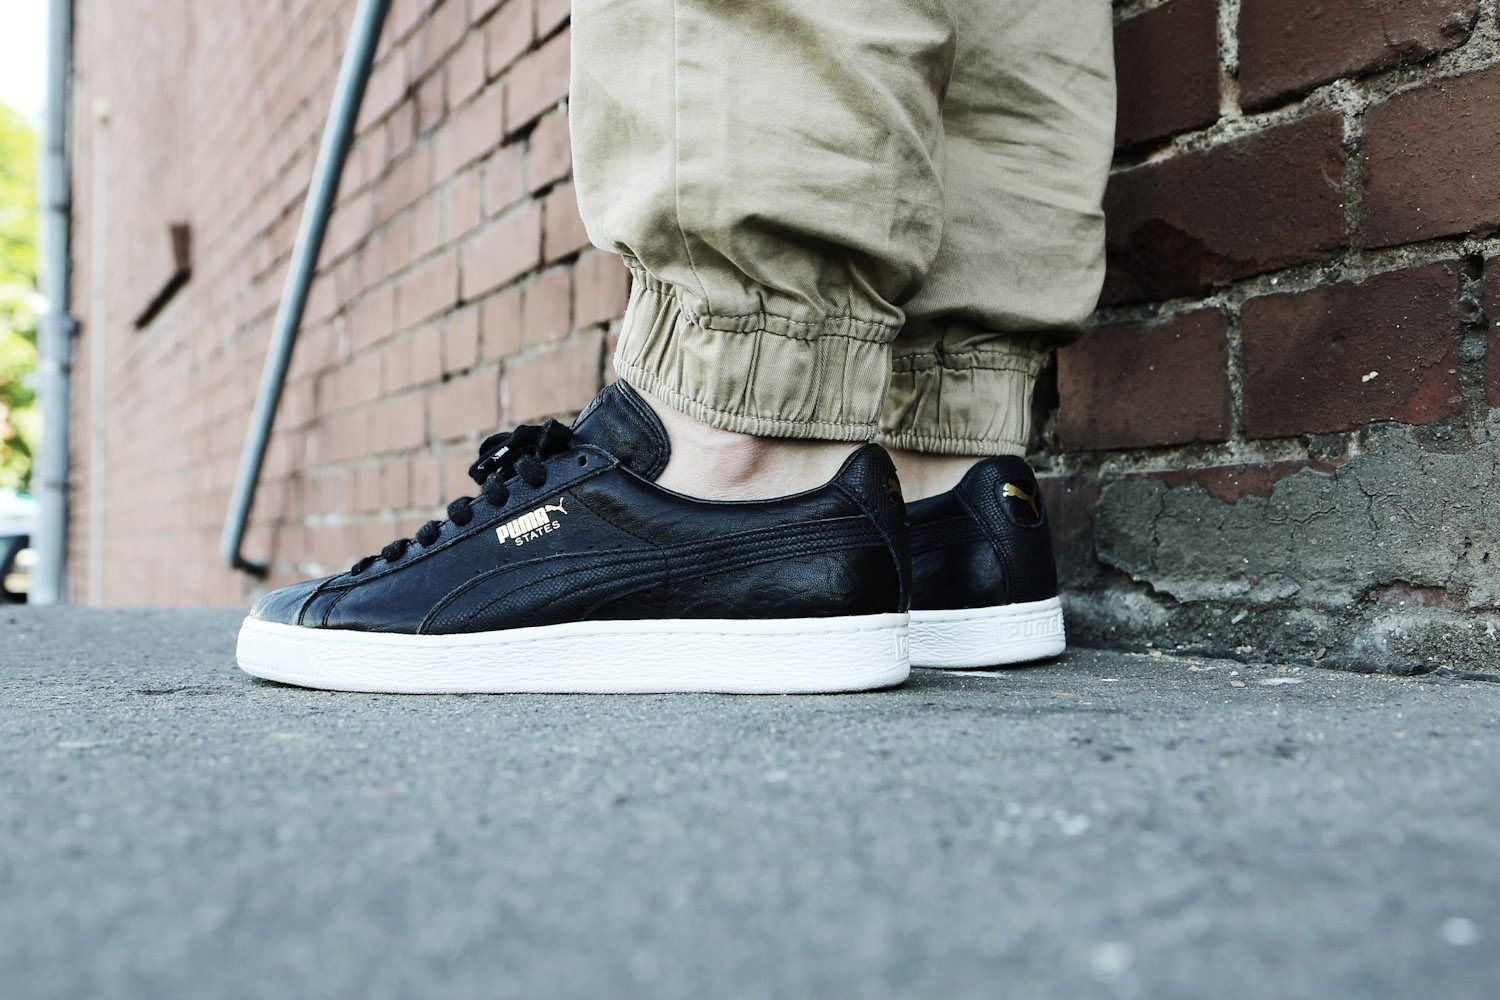 PUMA States Premium Leather Pack 3